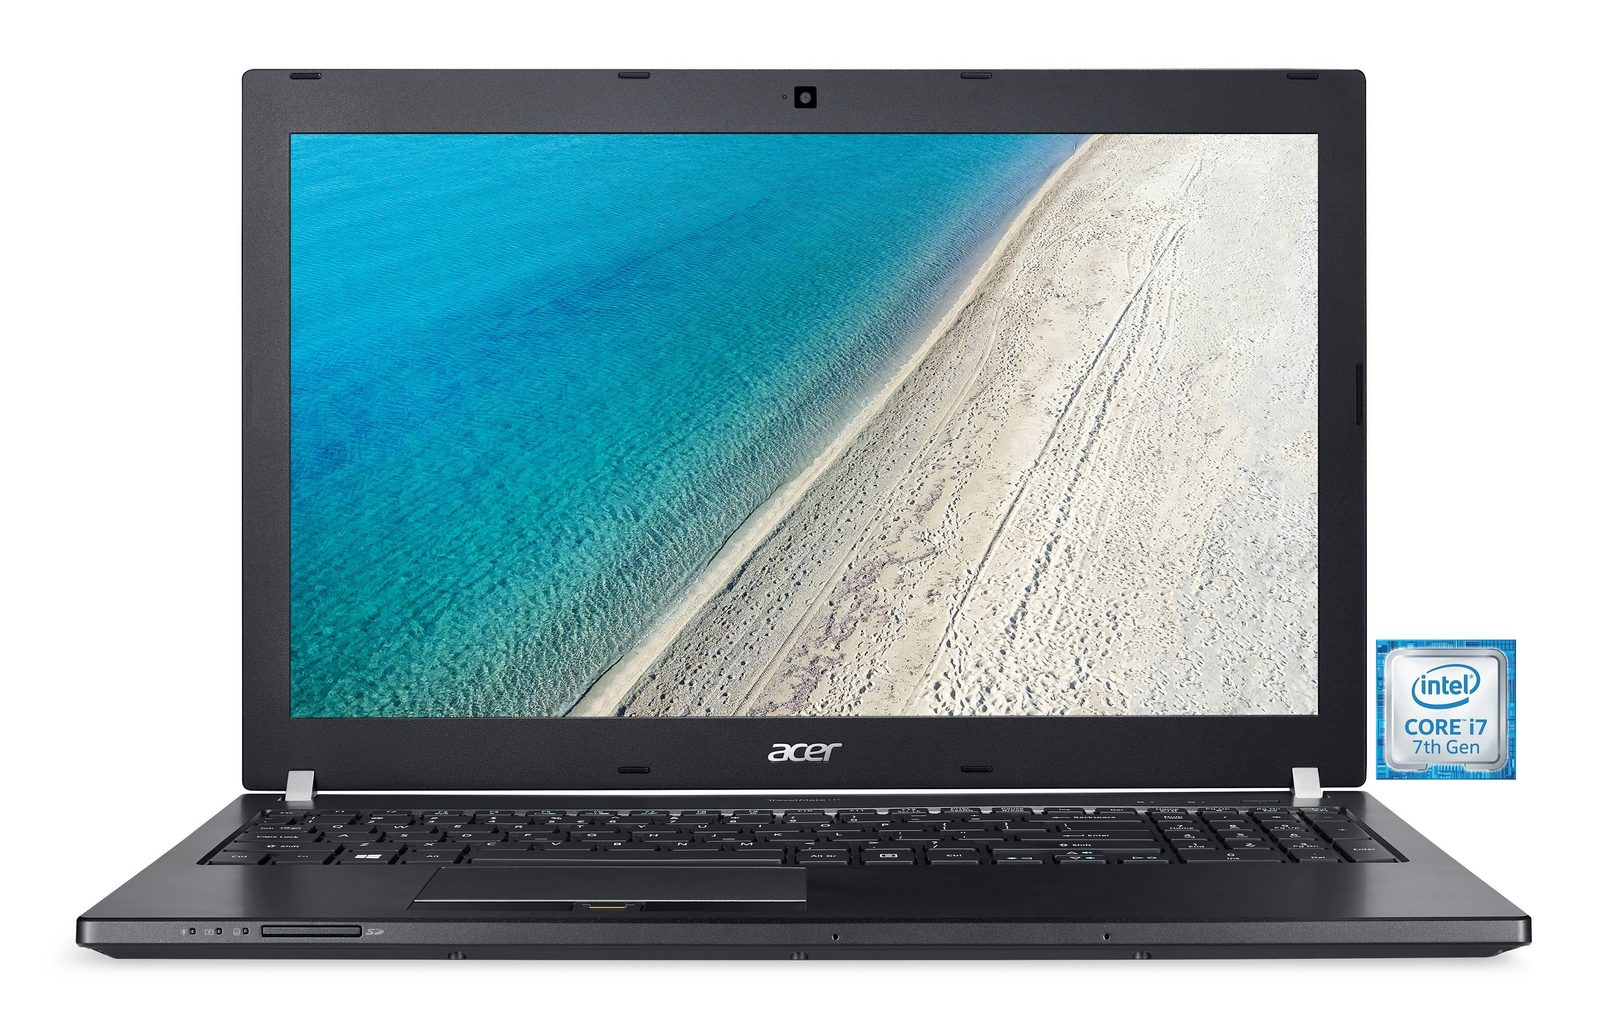 ACER TravelMate TMP658-G2-MG-759U Notebook »Intel Core i7, 39,62cm (15,6´´), 512 GB SSD, 8 GB«